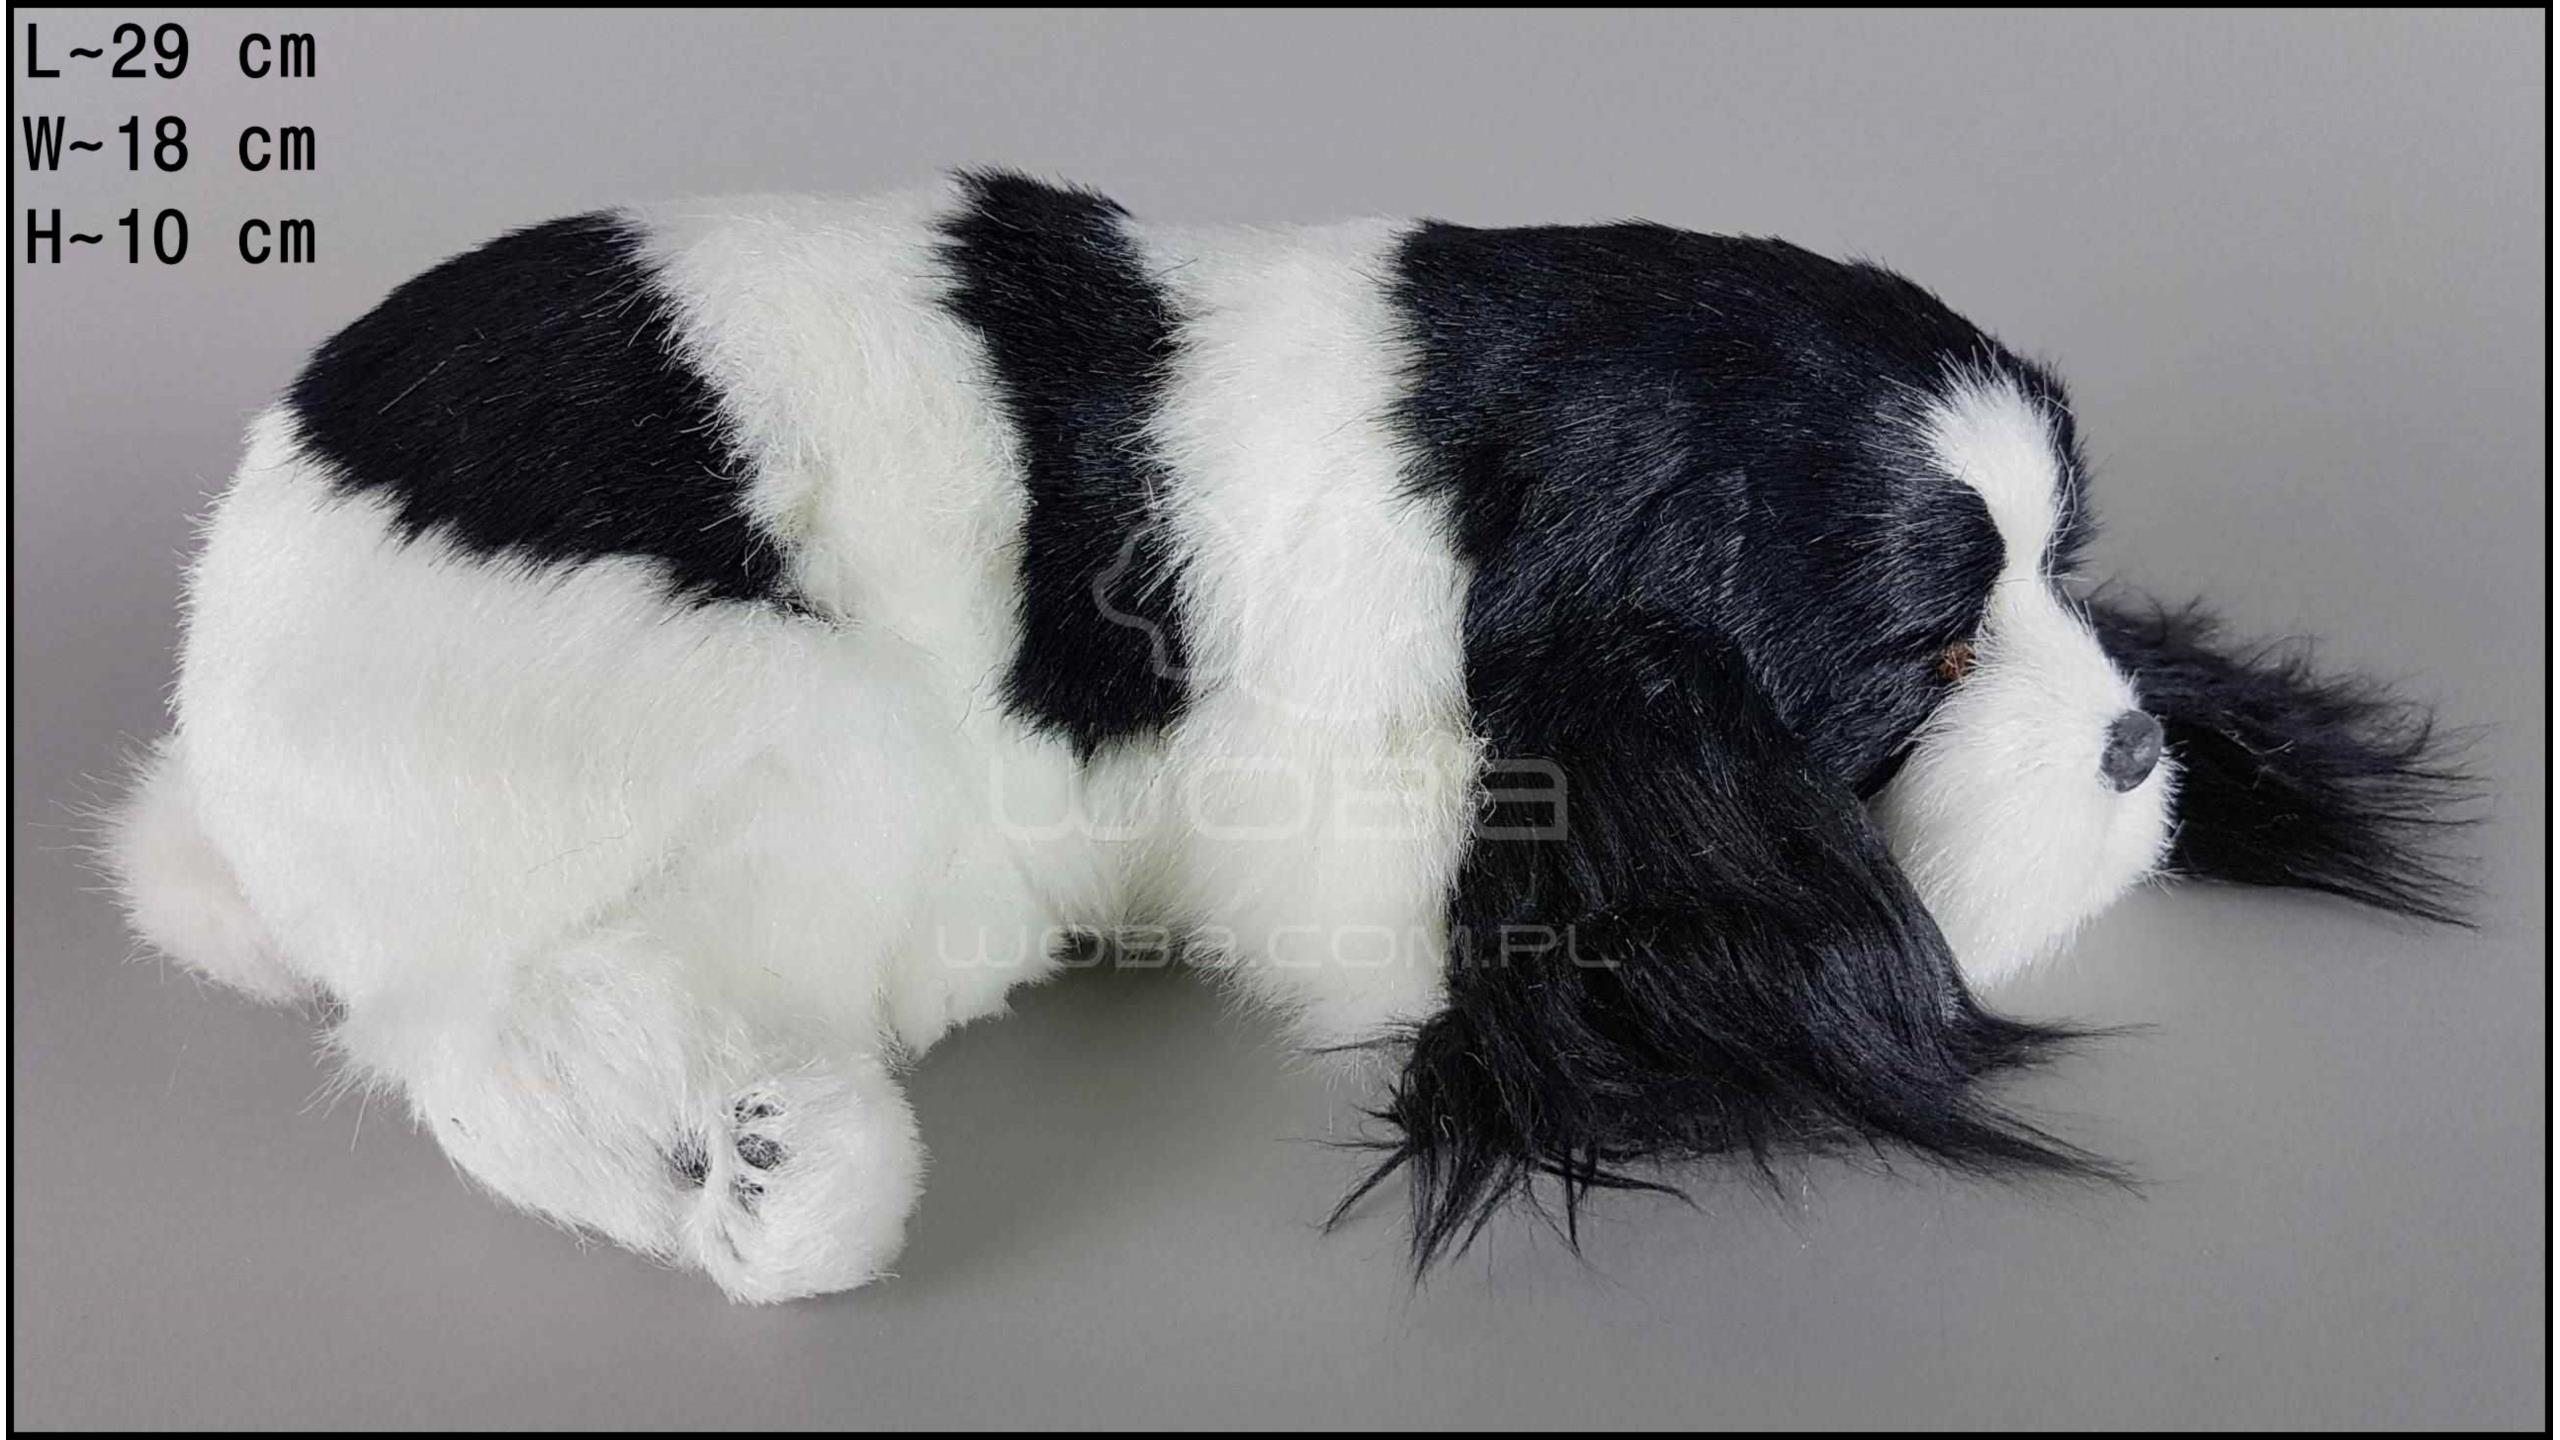 Cocker Spaniel - Size L - Black & White